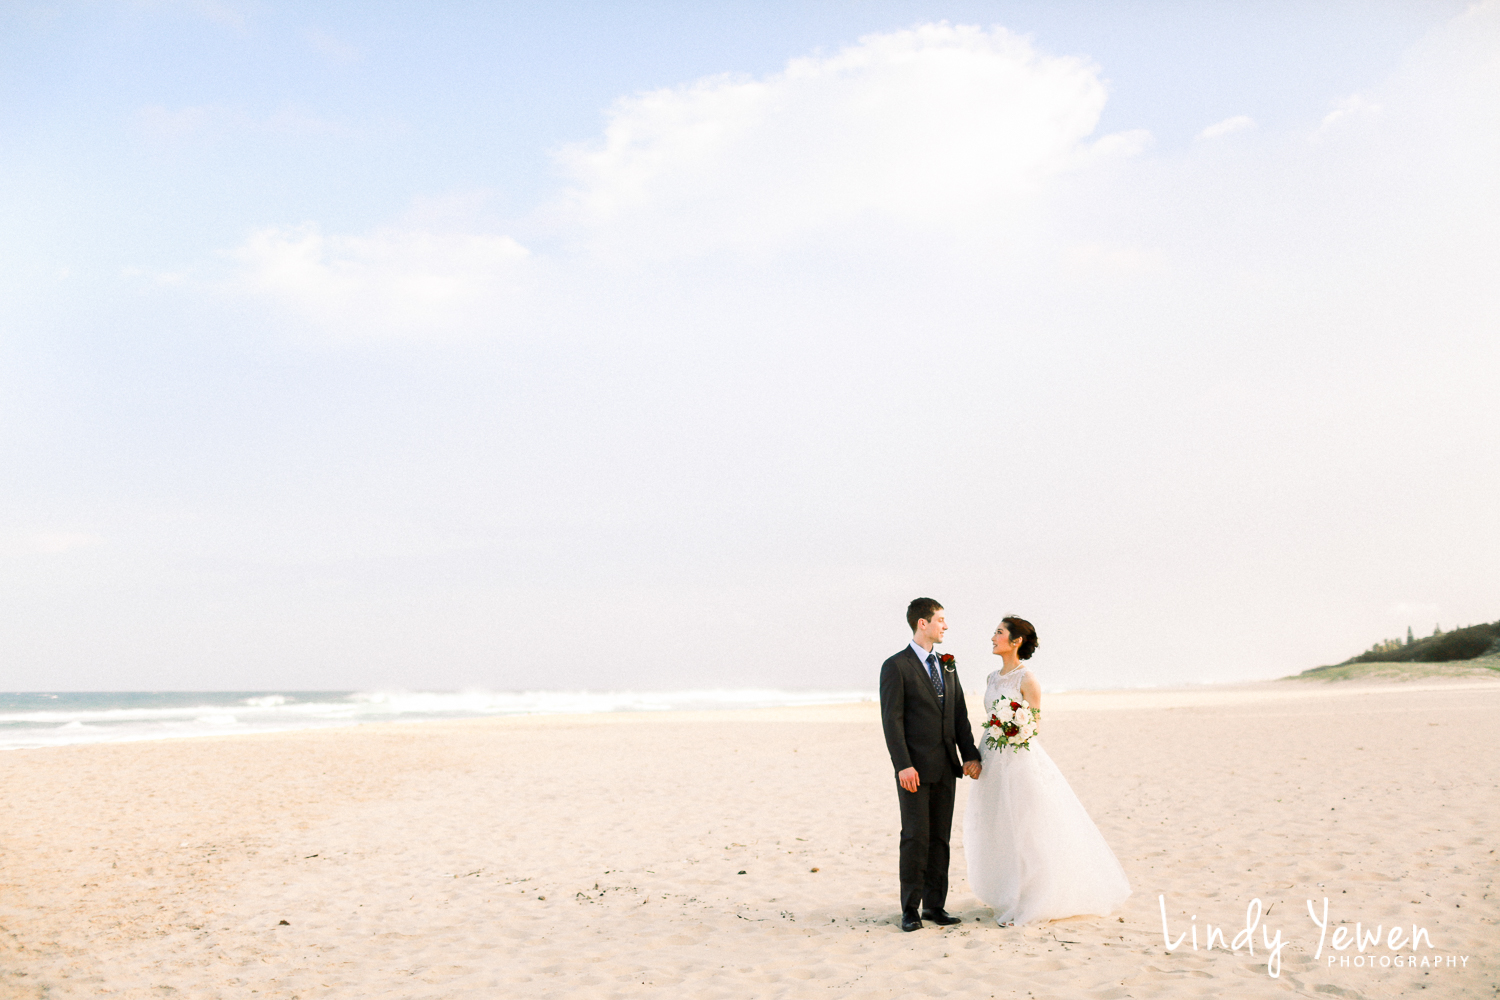 Sunshine-Beach-Weddings-Dimitrije-Maria 100.jpg